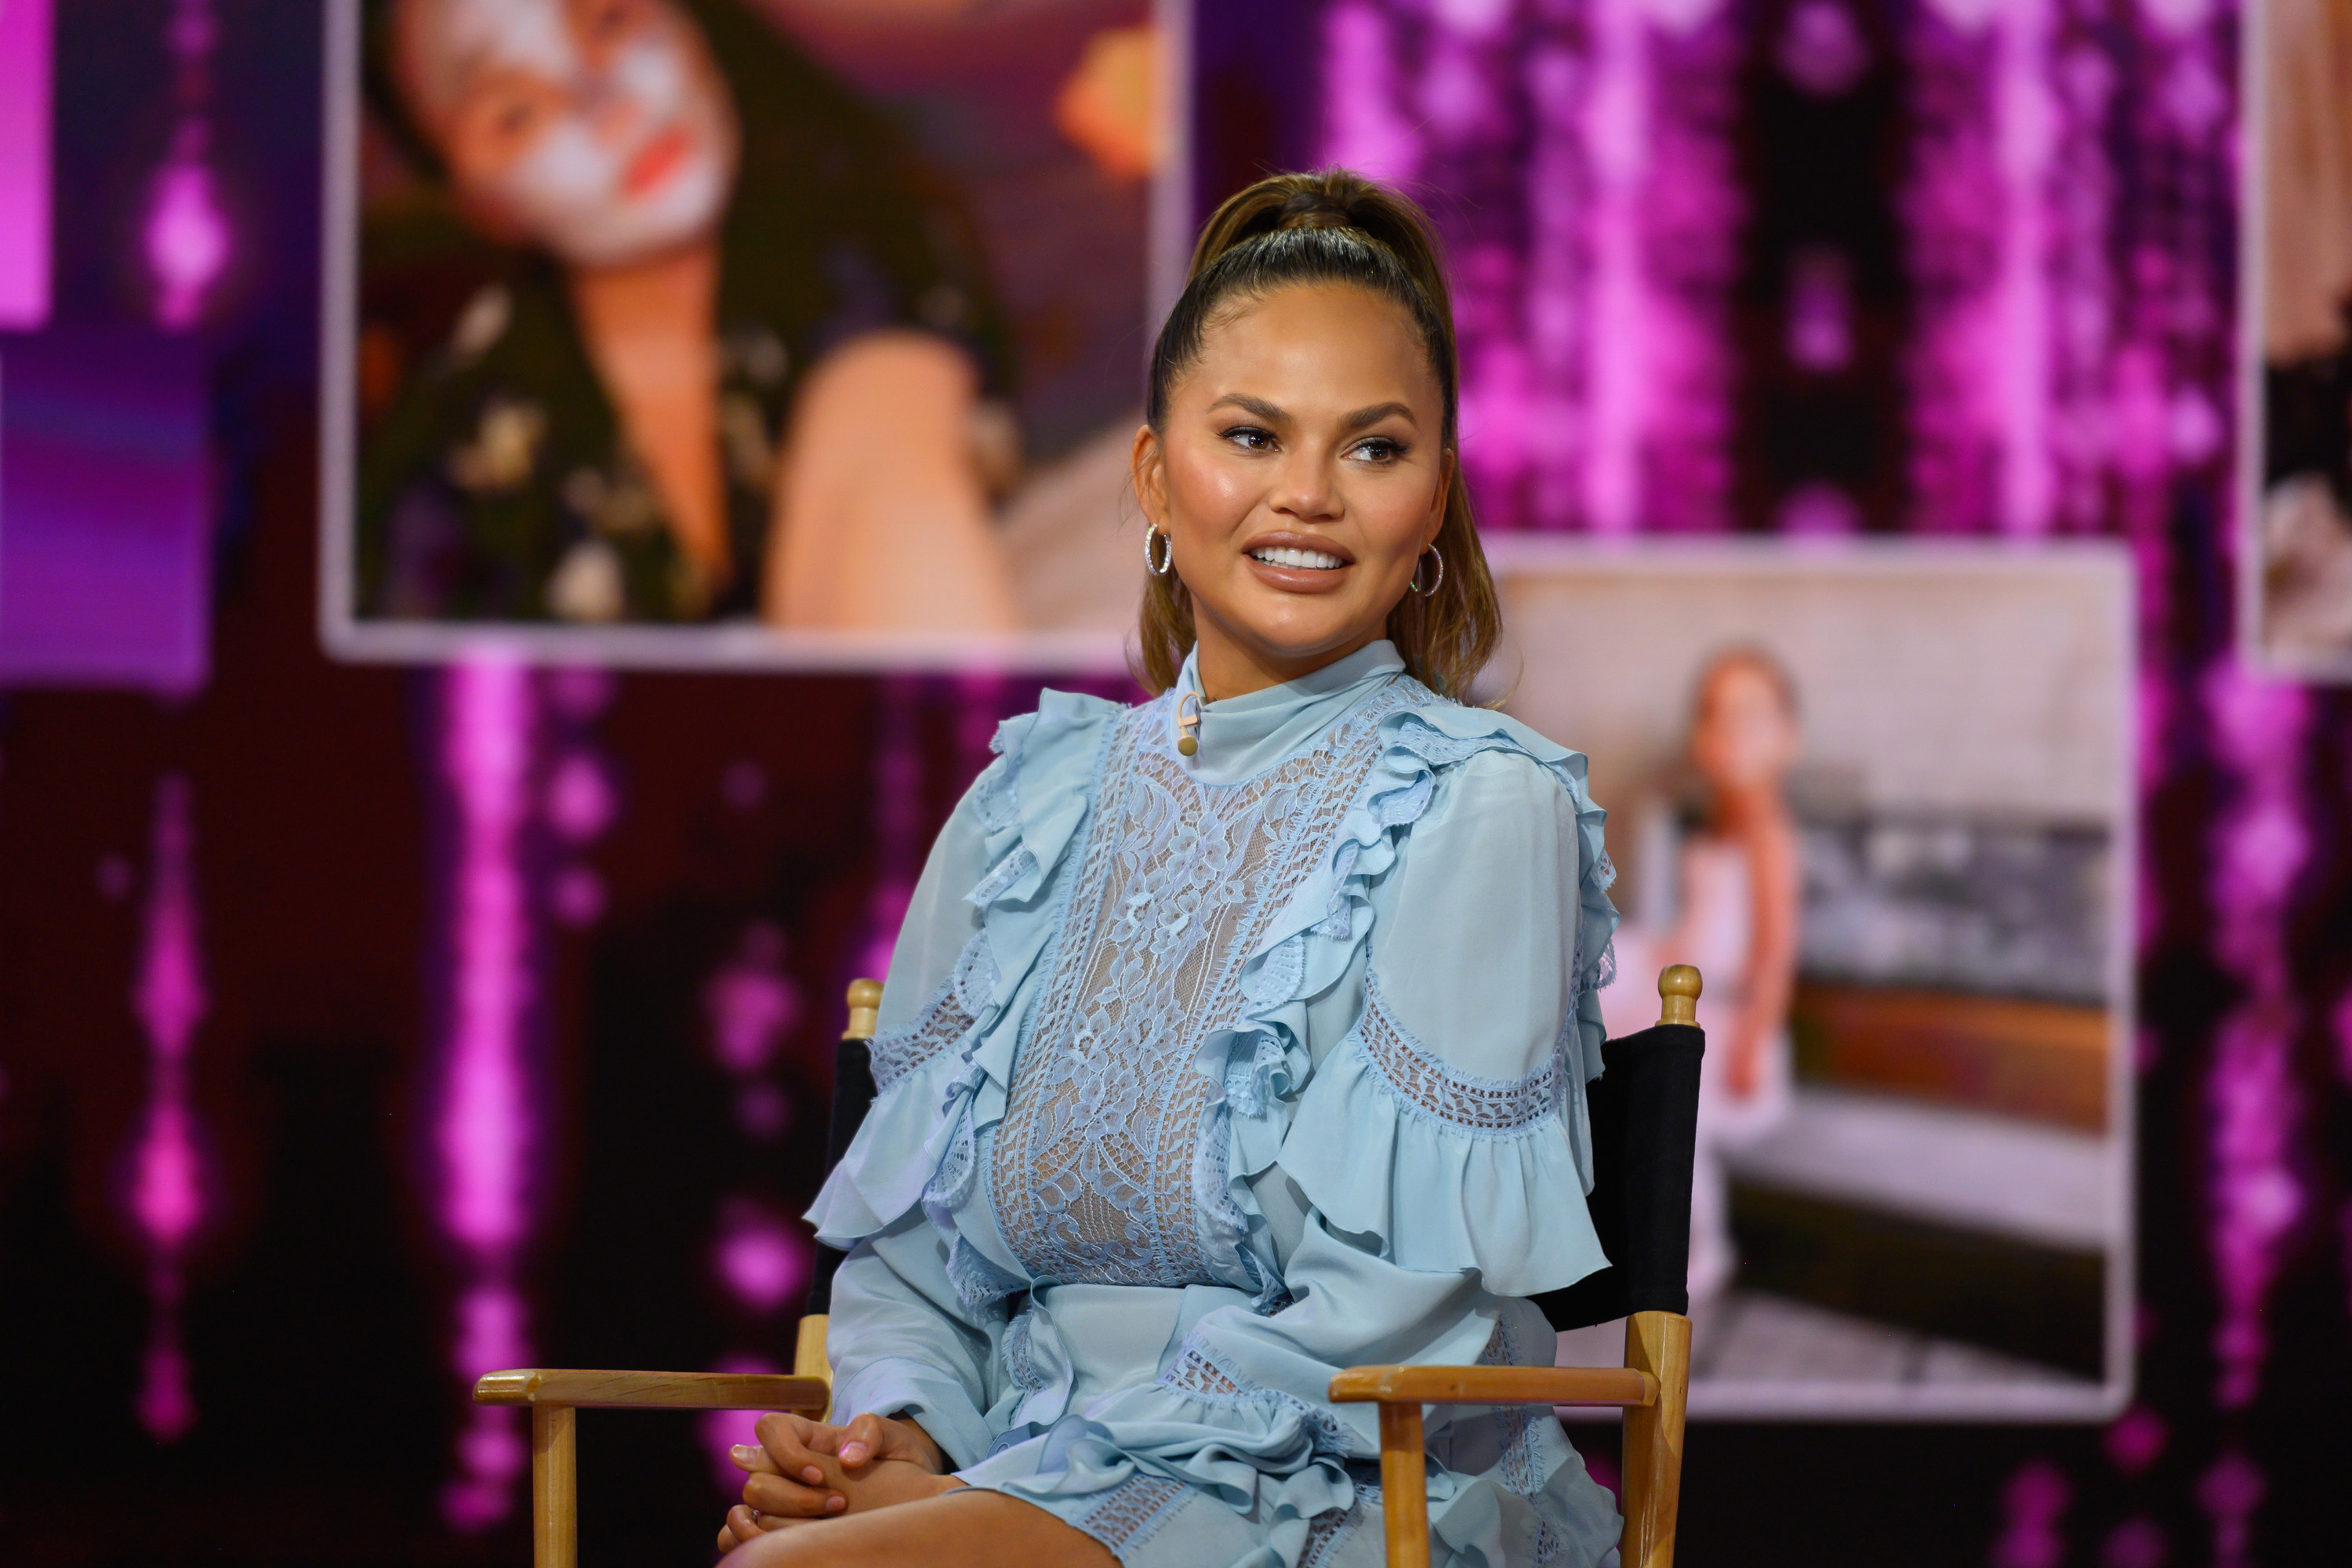 Chrissy Teigen is photographed while sitting in a chair on a set